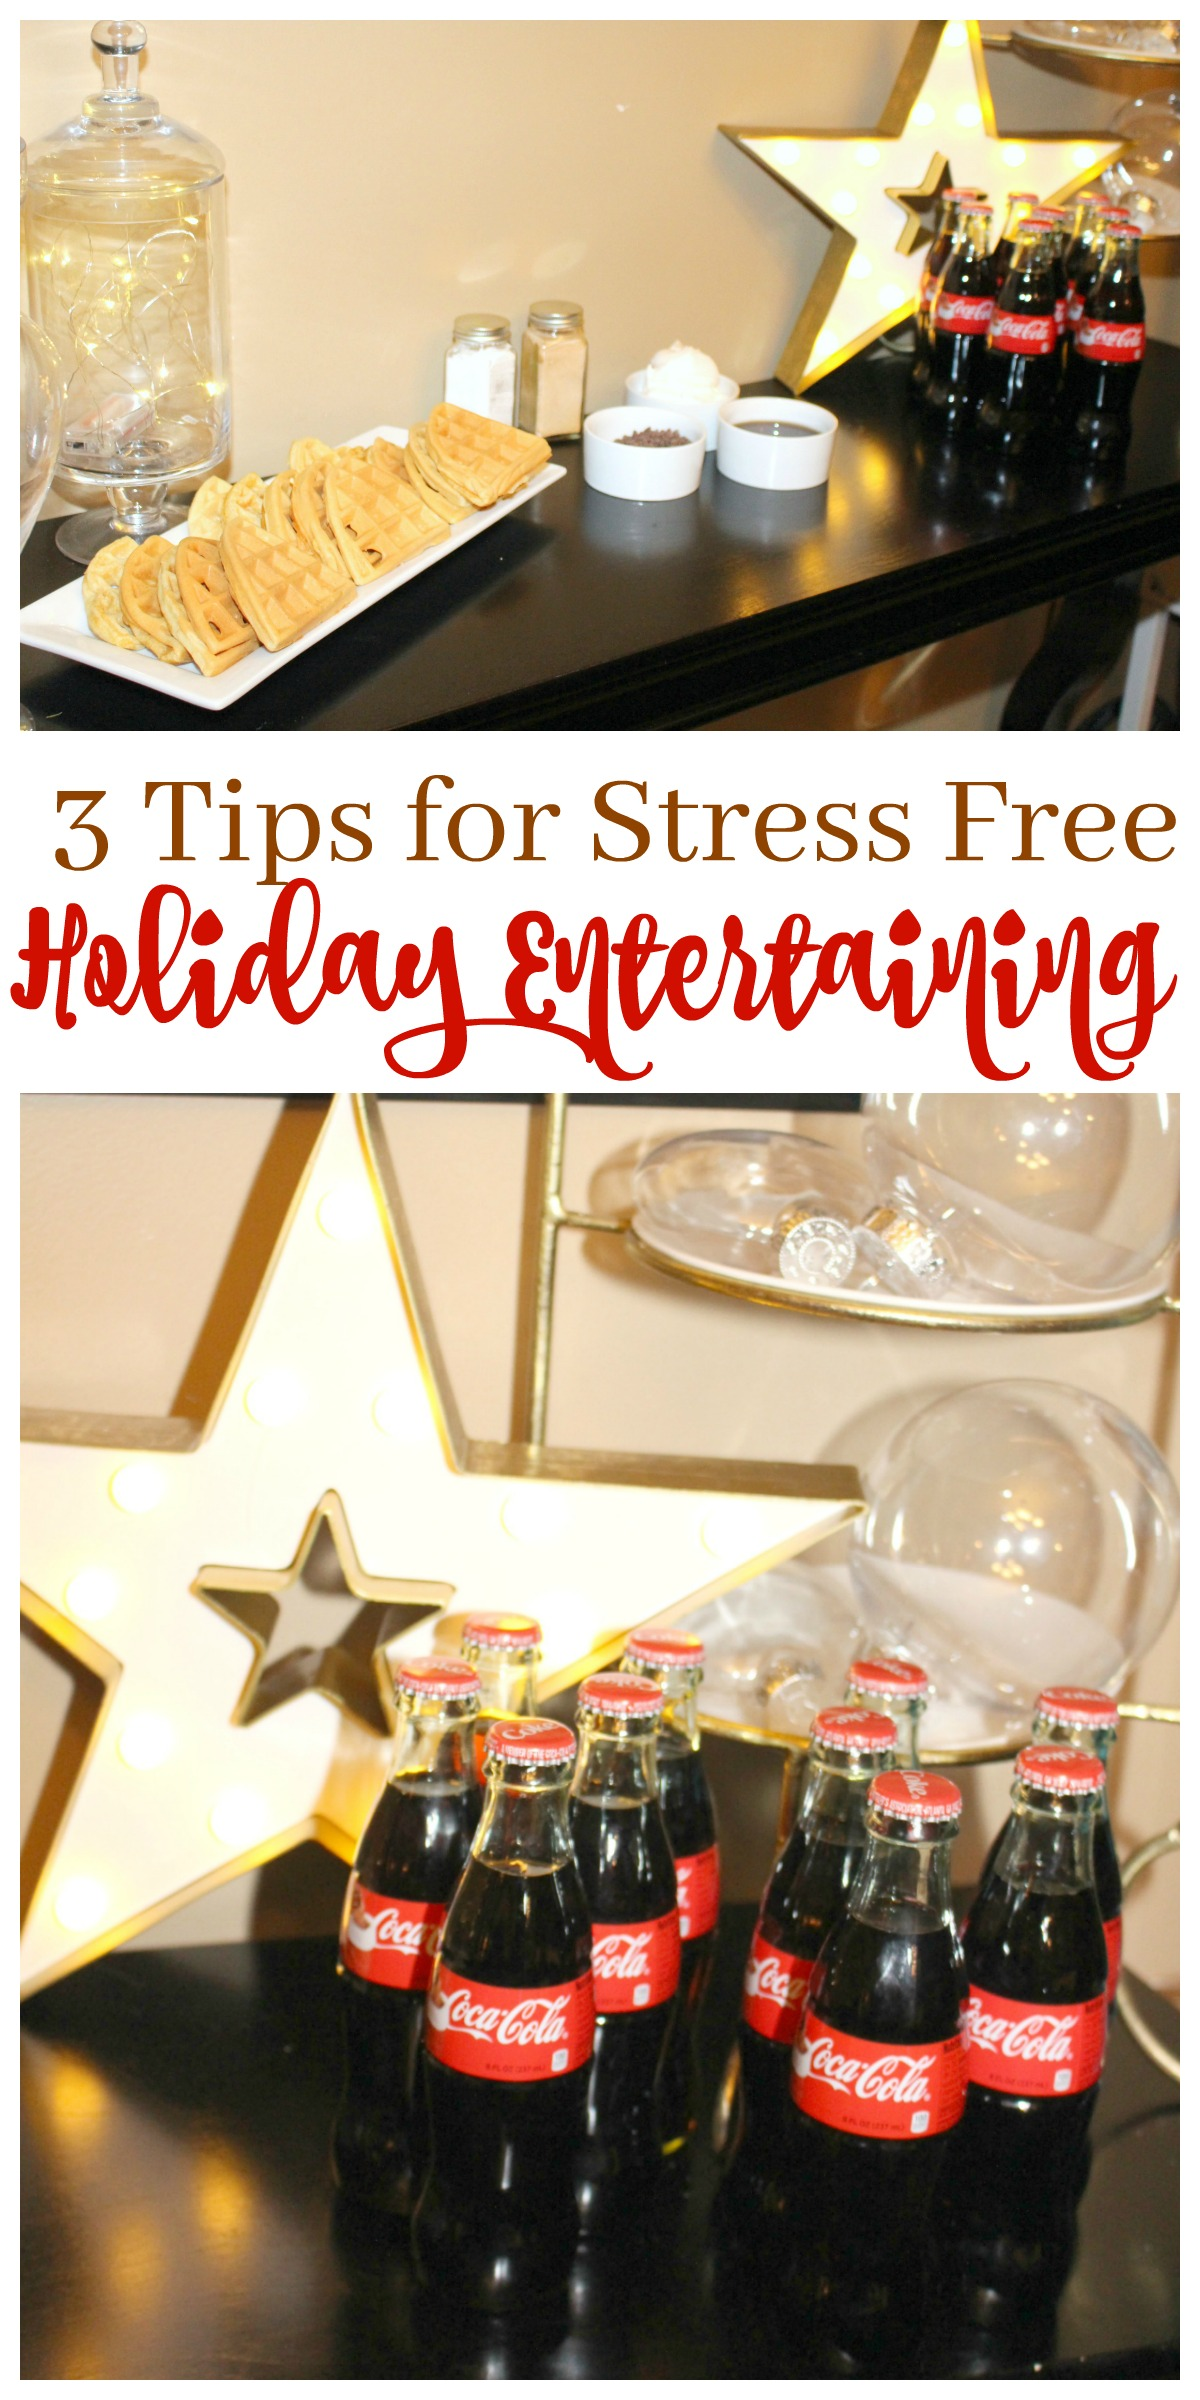 3 Easy Tips for Stress Free Holiday Entertaining